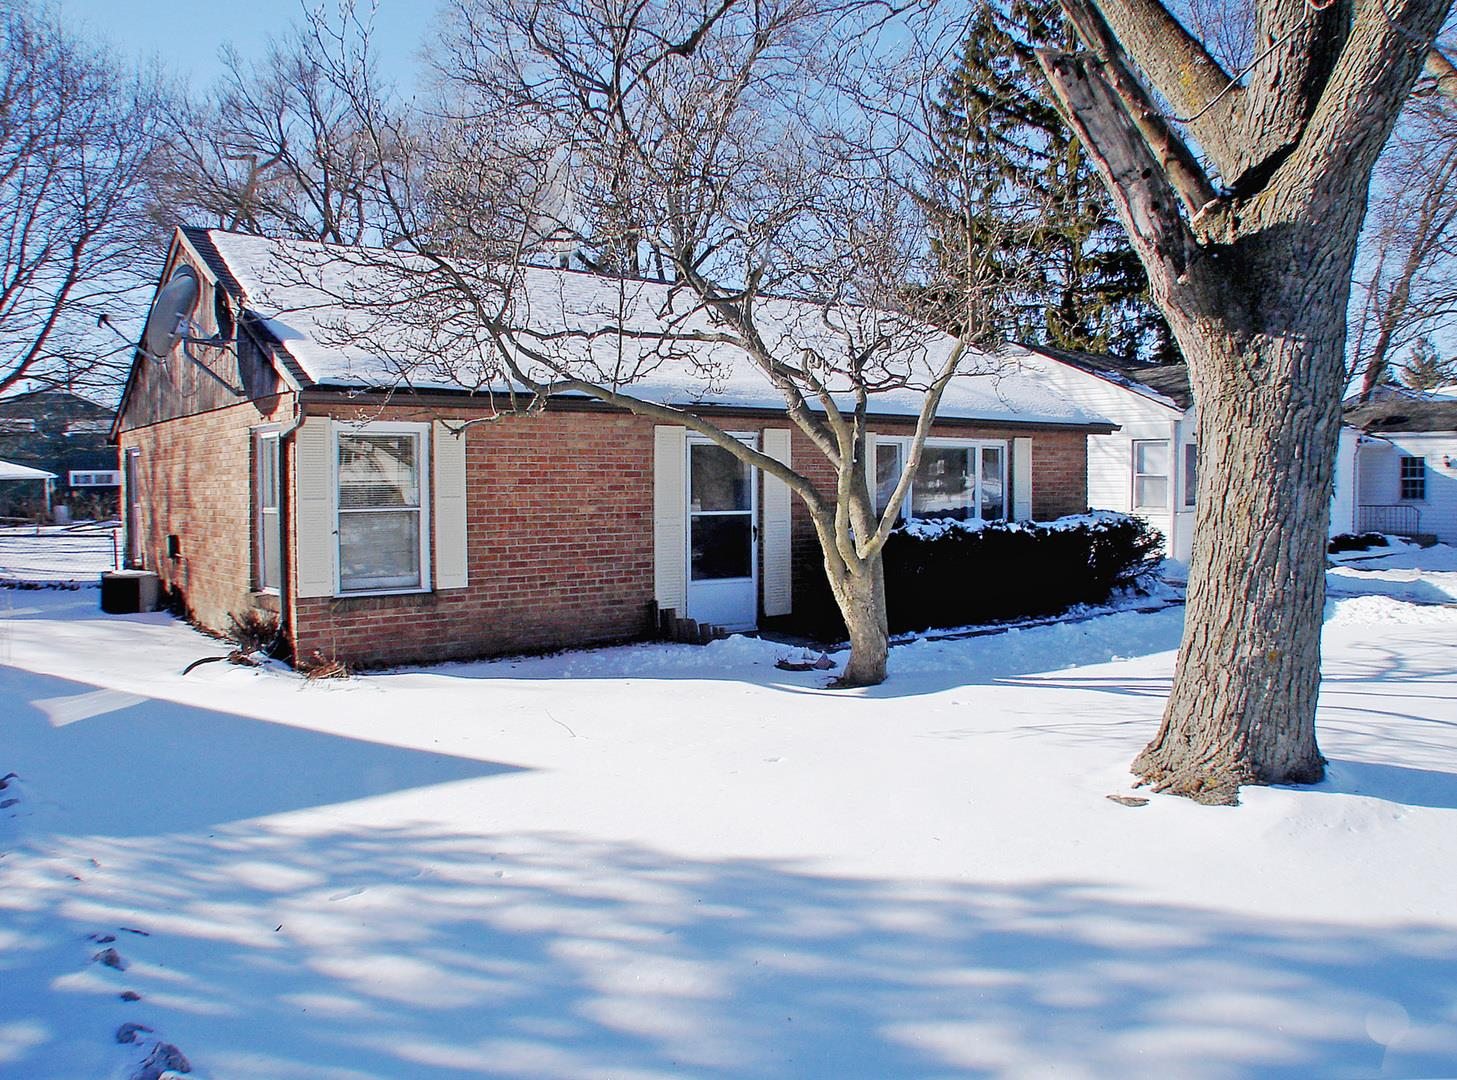 325 S OLD RAND Road, Lake Zurich, IL 60047 - #: 10980709